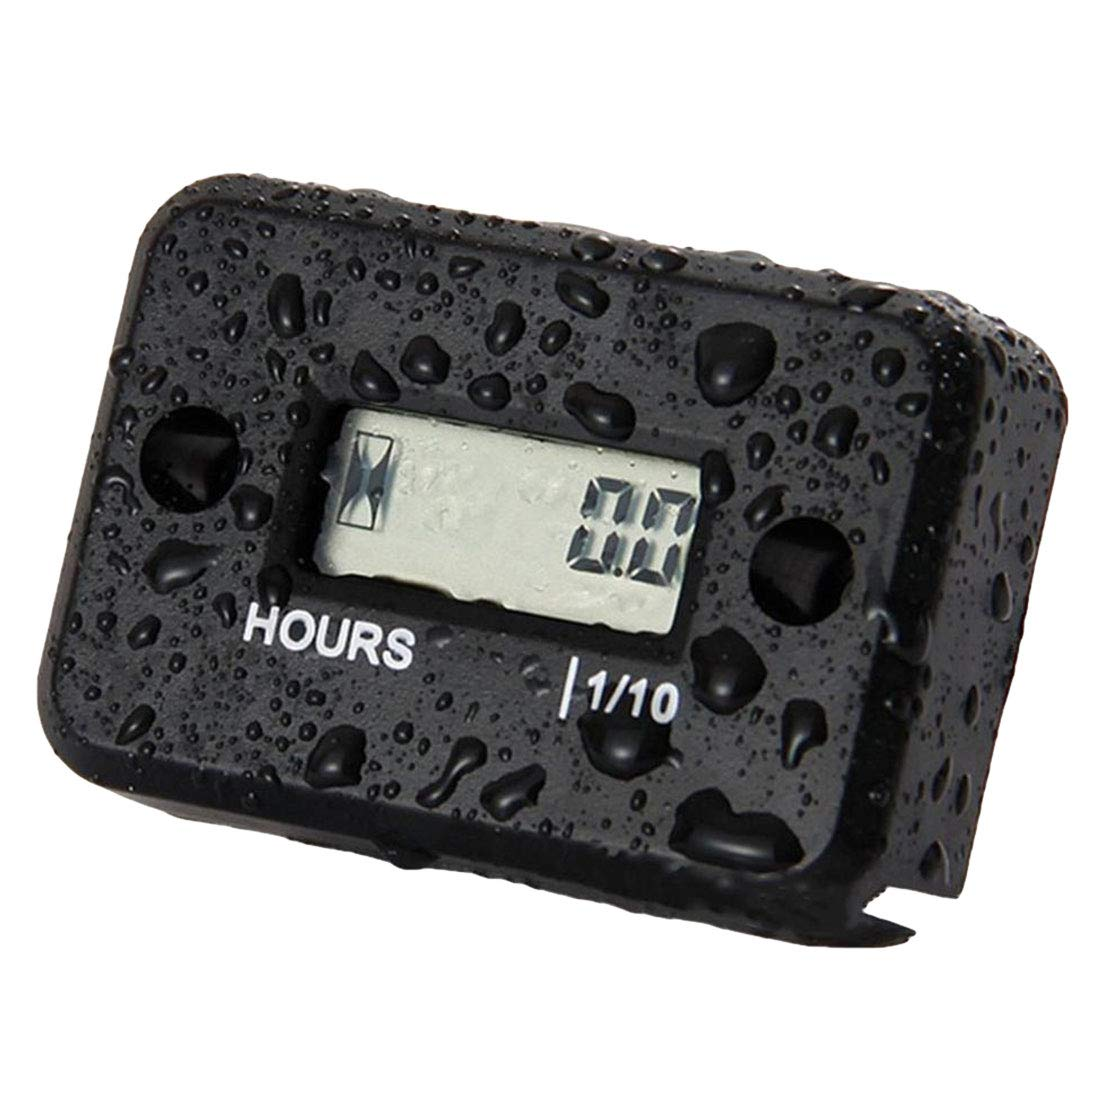 ihen-Tech Portable Digital Tach Hour Meter Tachometer Gauge LCD for Gas Engine Snowmobile ATV Motorcycle Bike